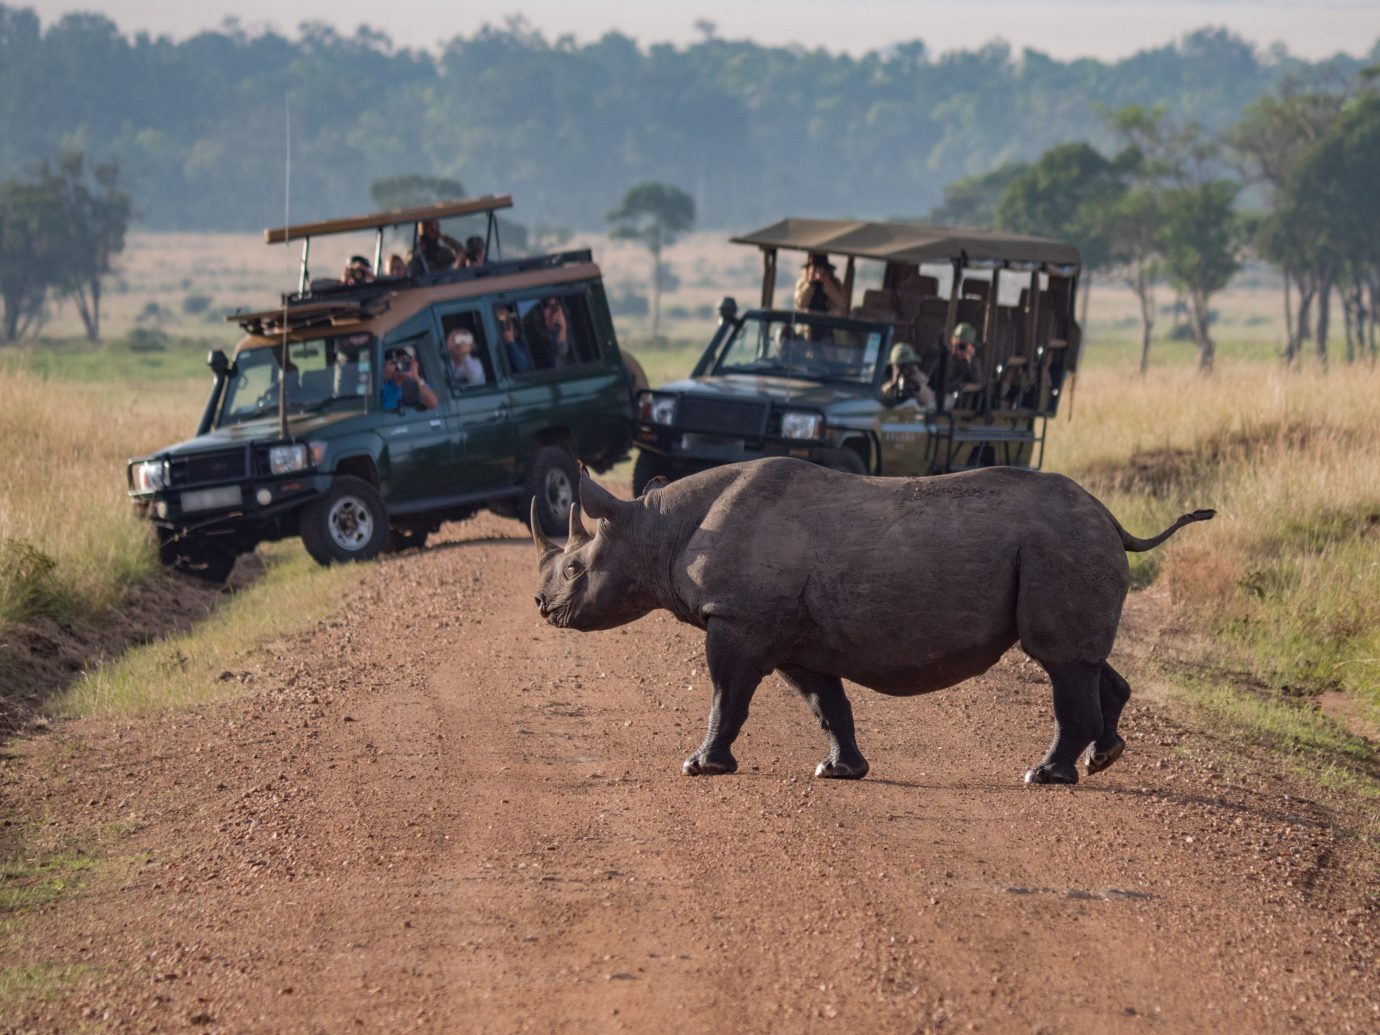 Rhino Crossing the Road in Namibia Africa